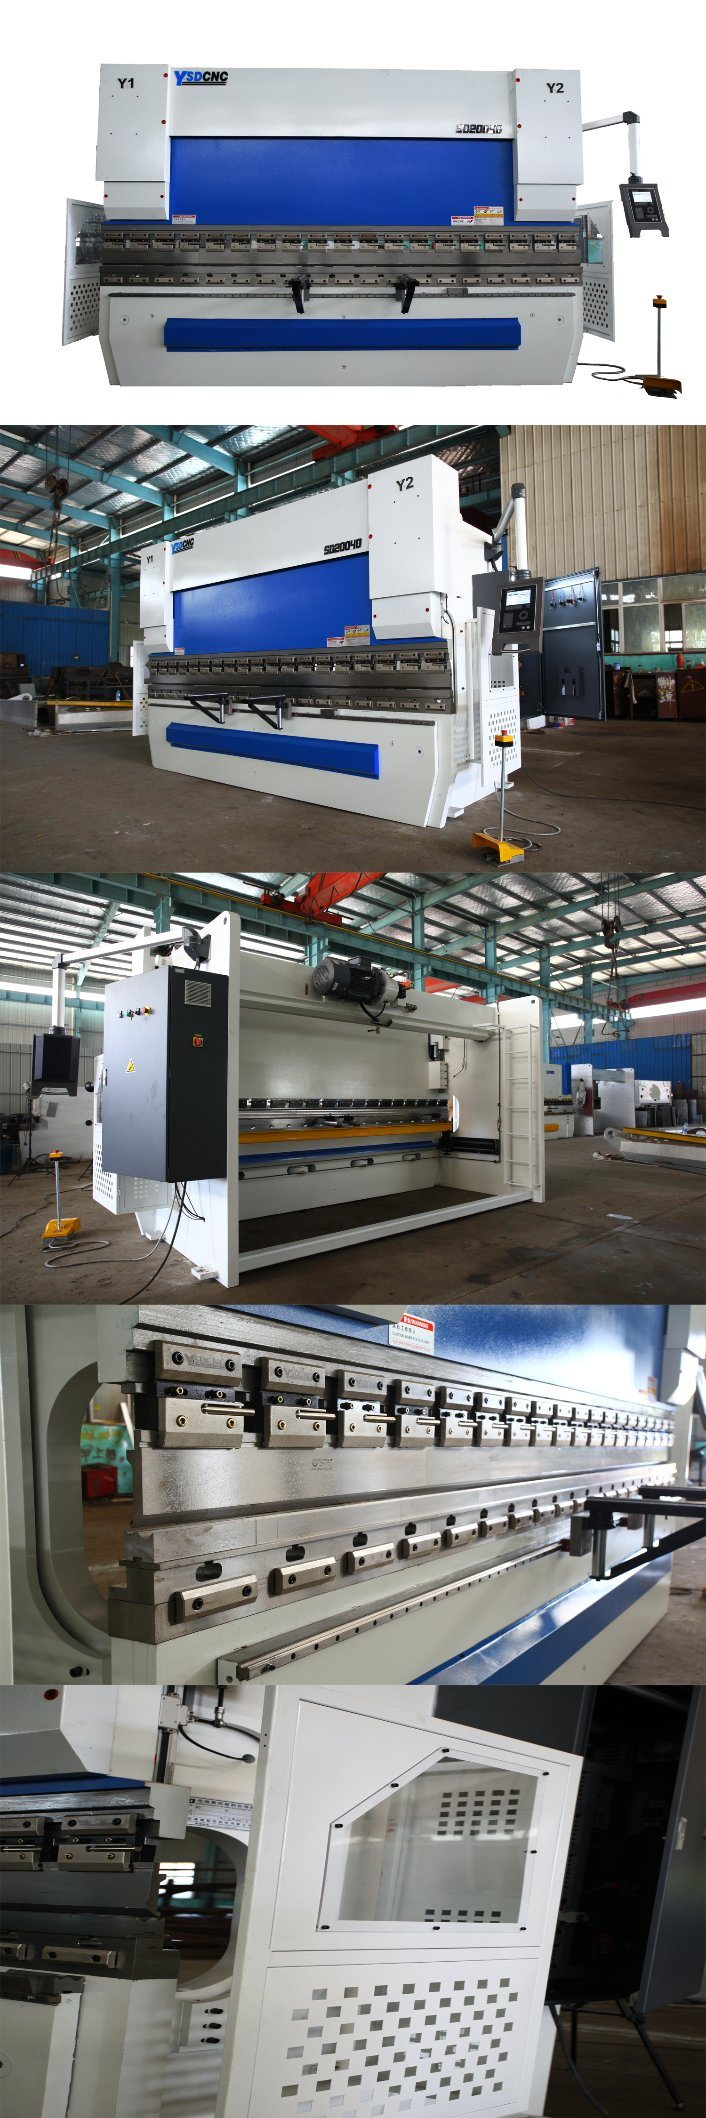 Hydraulic Plate Bending Machine with Da52s System 4+1 Axis